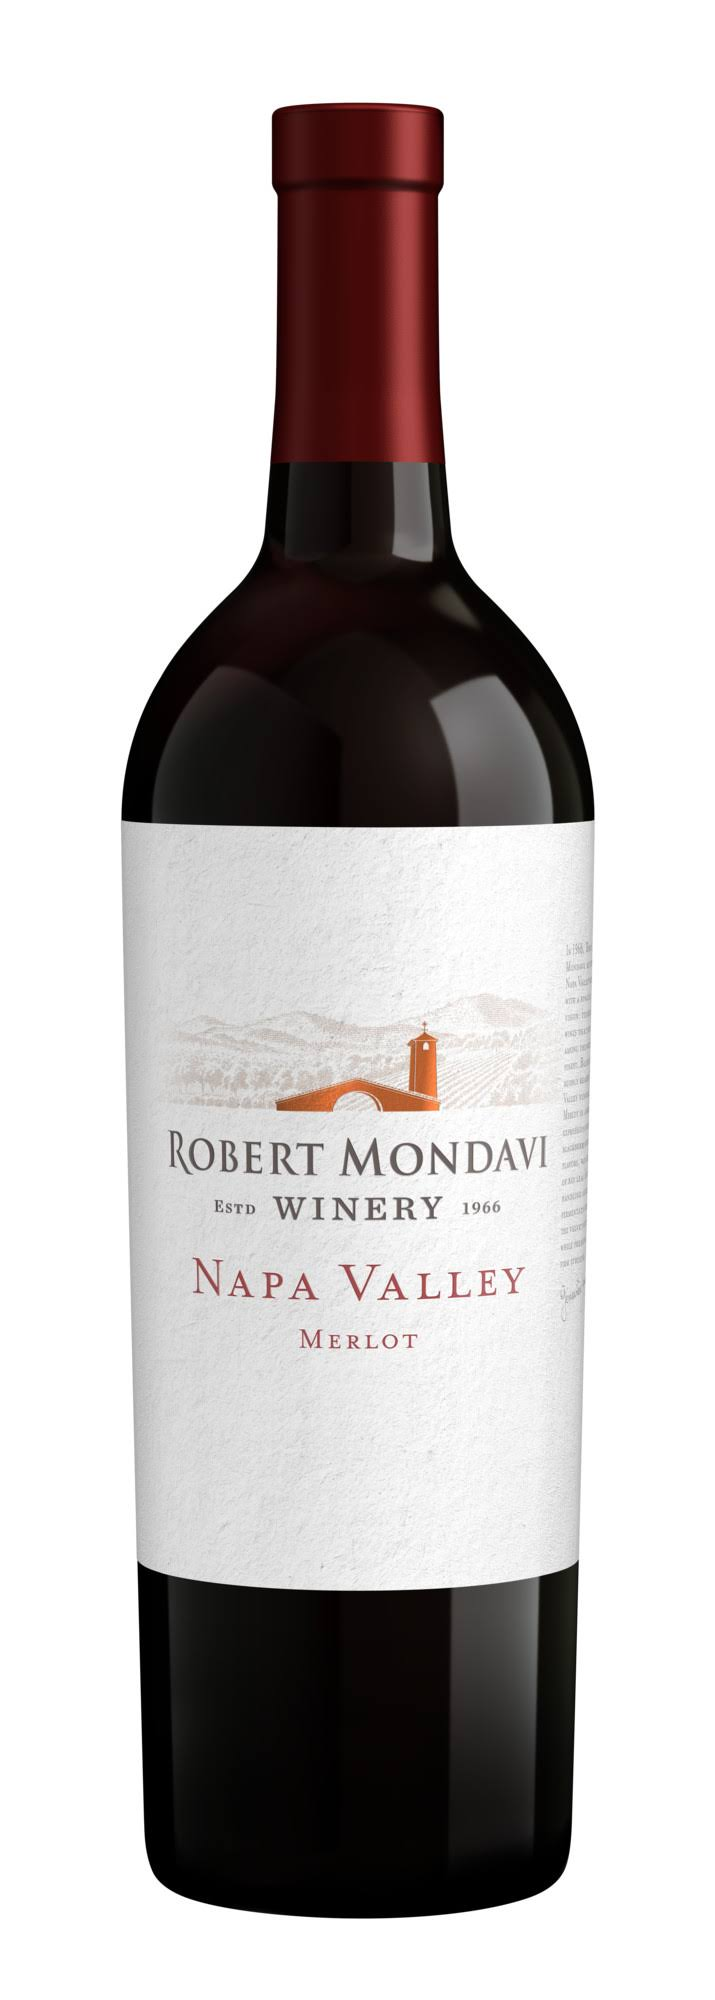 Robert Mondavi Winery Merlot Napa Valley